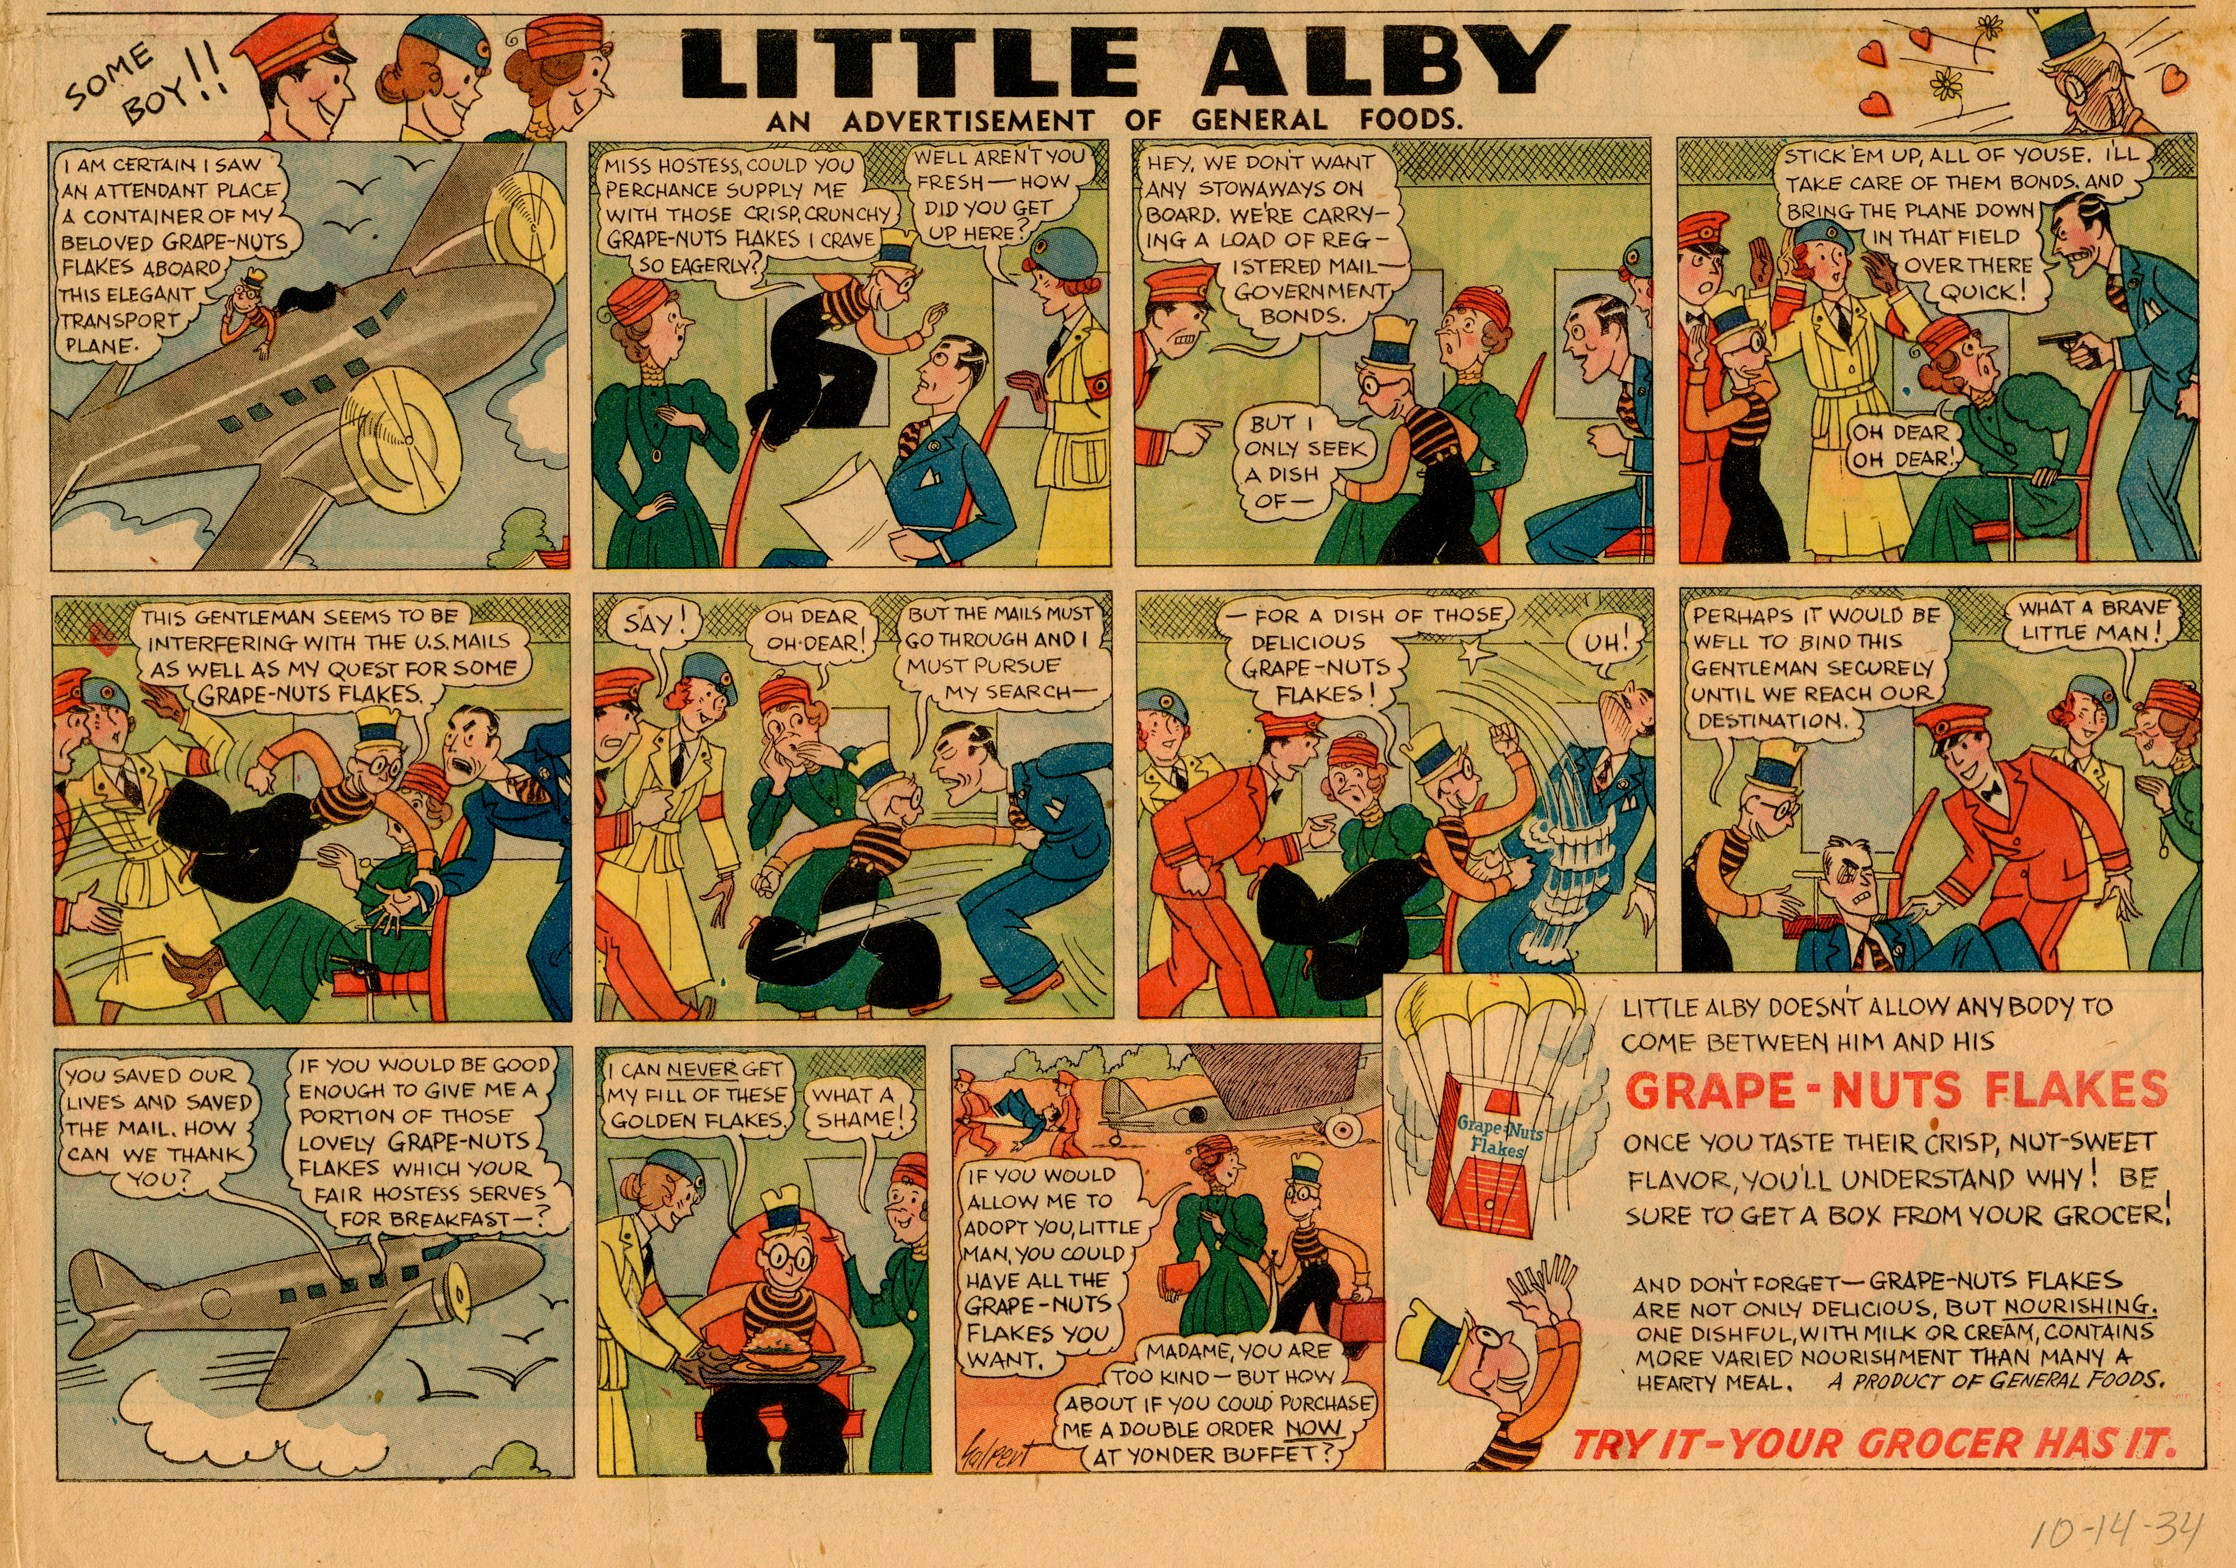 Little Alby, Oct. 14, 1934